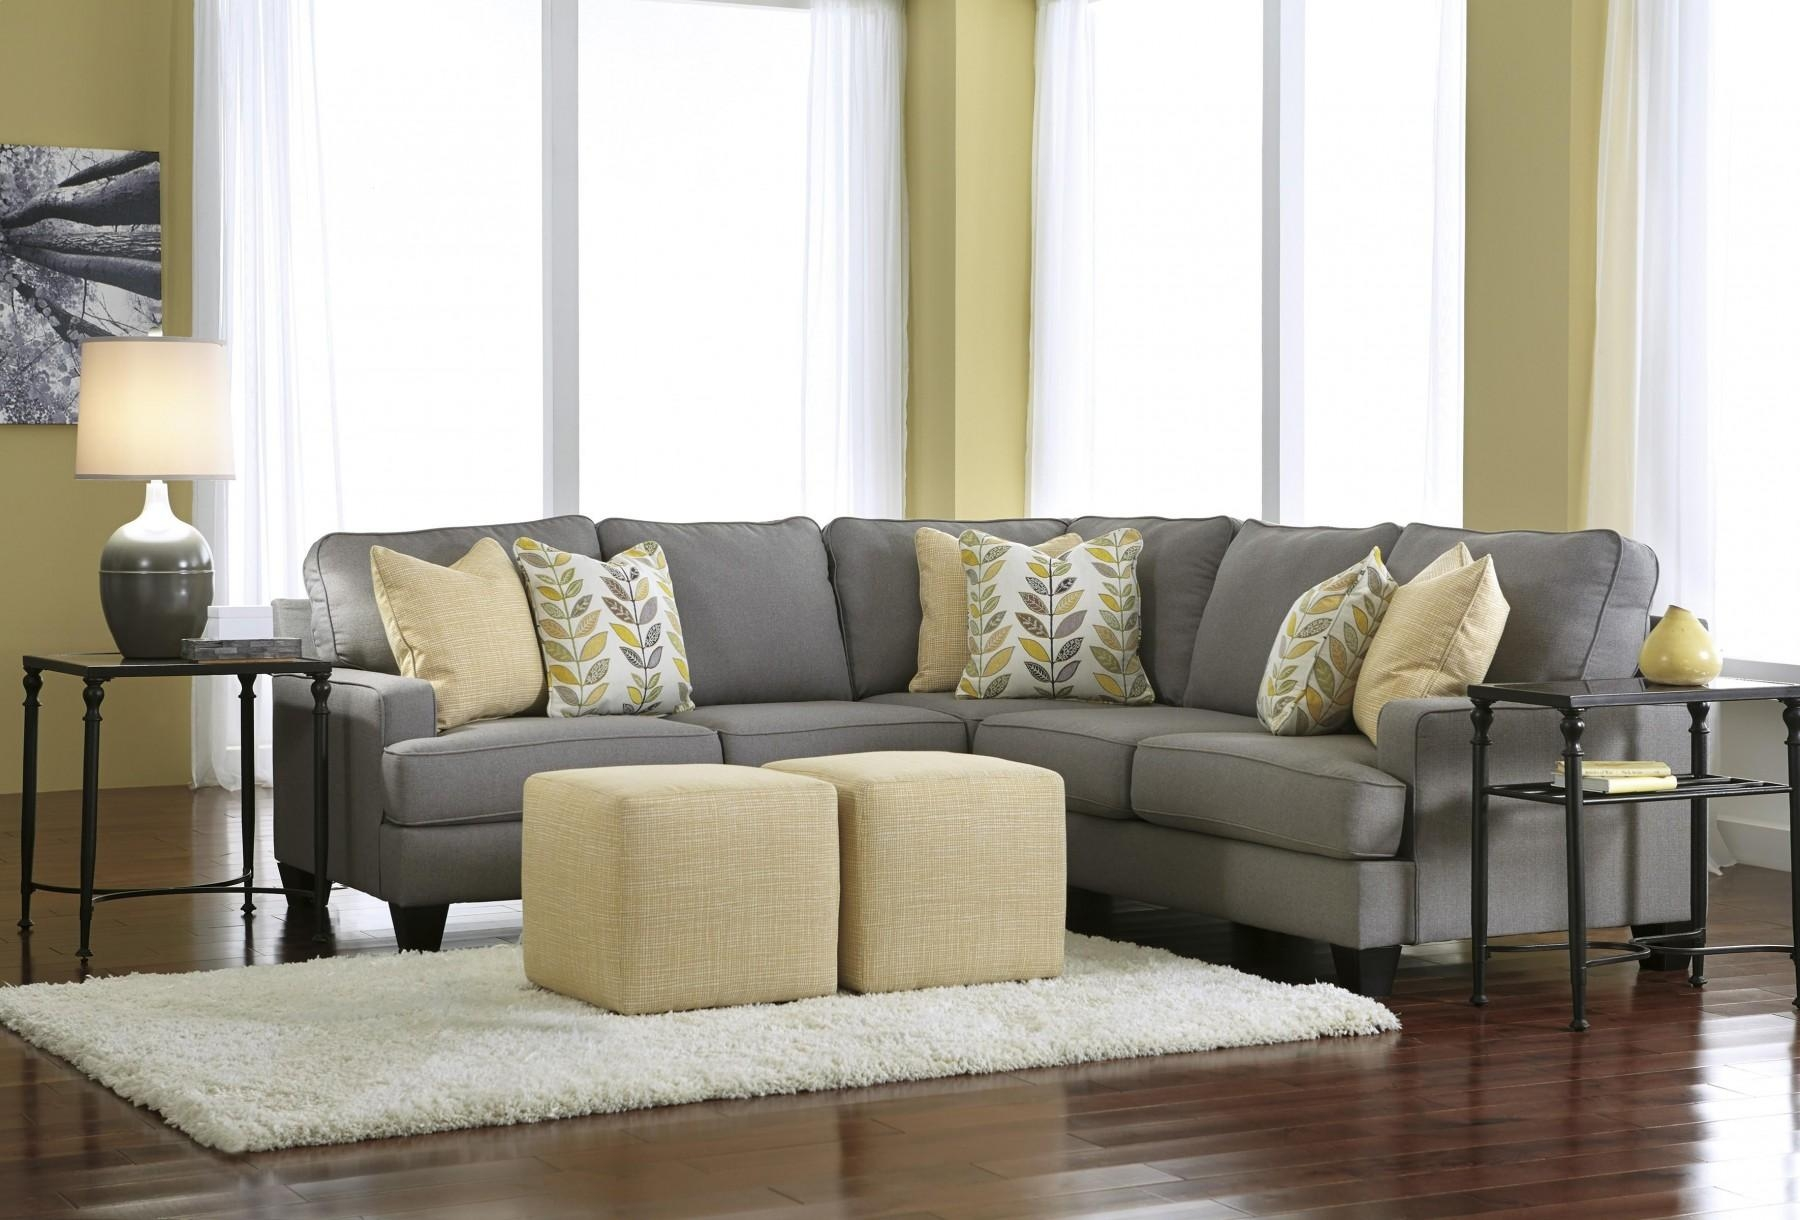 Sofas Center : Cu Left Cuddler Sectional Sofa Bassett Home Throughout Bassett Cuddler Sectional (View 11 of 15)